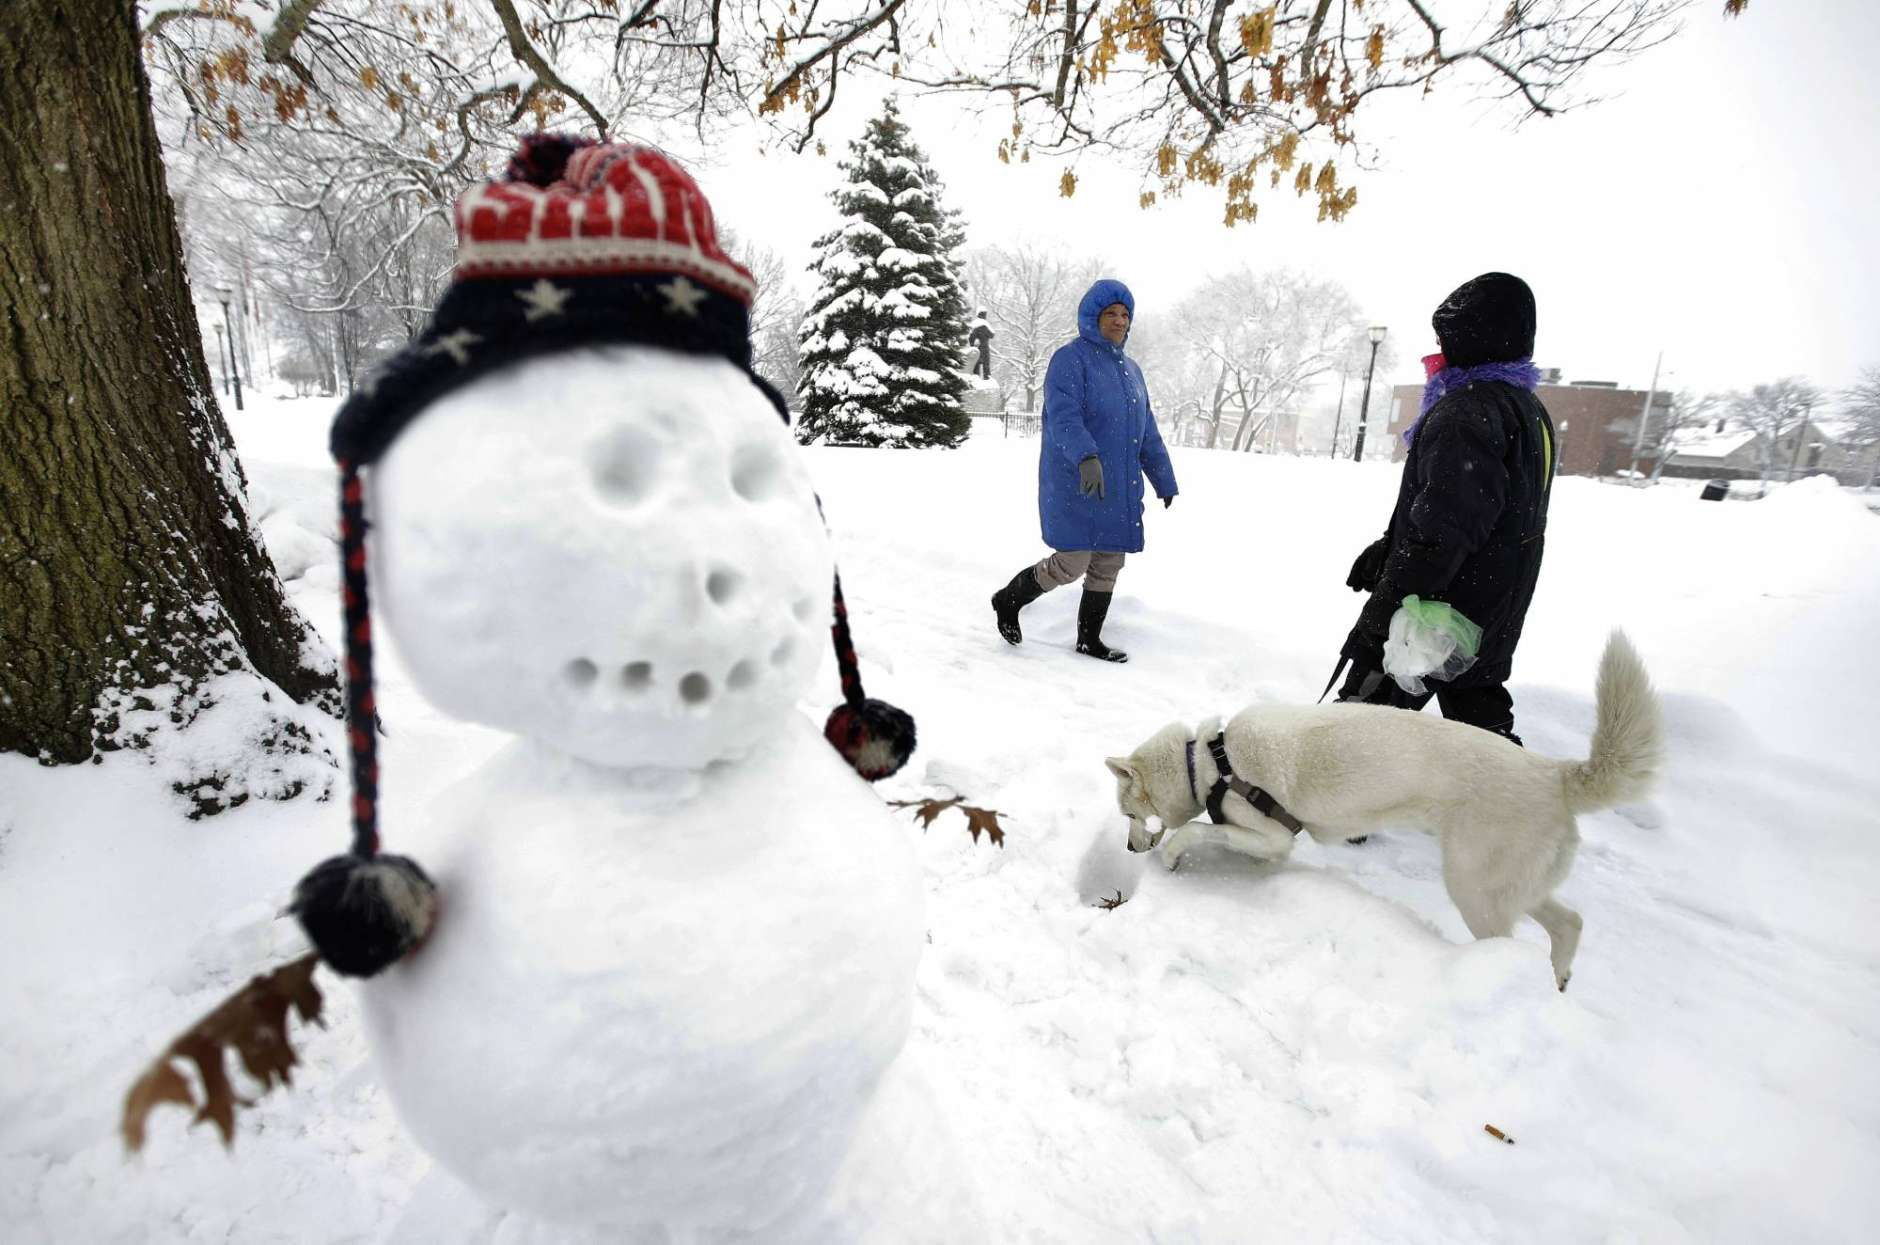 Tina Fuller, 60, of Waltham, Mass., behind center, walks past a snowman and a person walking a dog, Sunday, Feb. 12, 2017, in Waltham, Mass. Officials in the Northeast are urging people take precautions and schools have begun announcing cancellations as another winter blast of snow moved into the region. (AP Photo/Steven Senne)